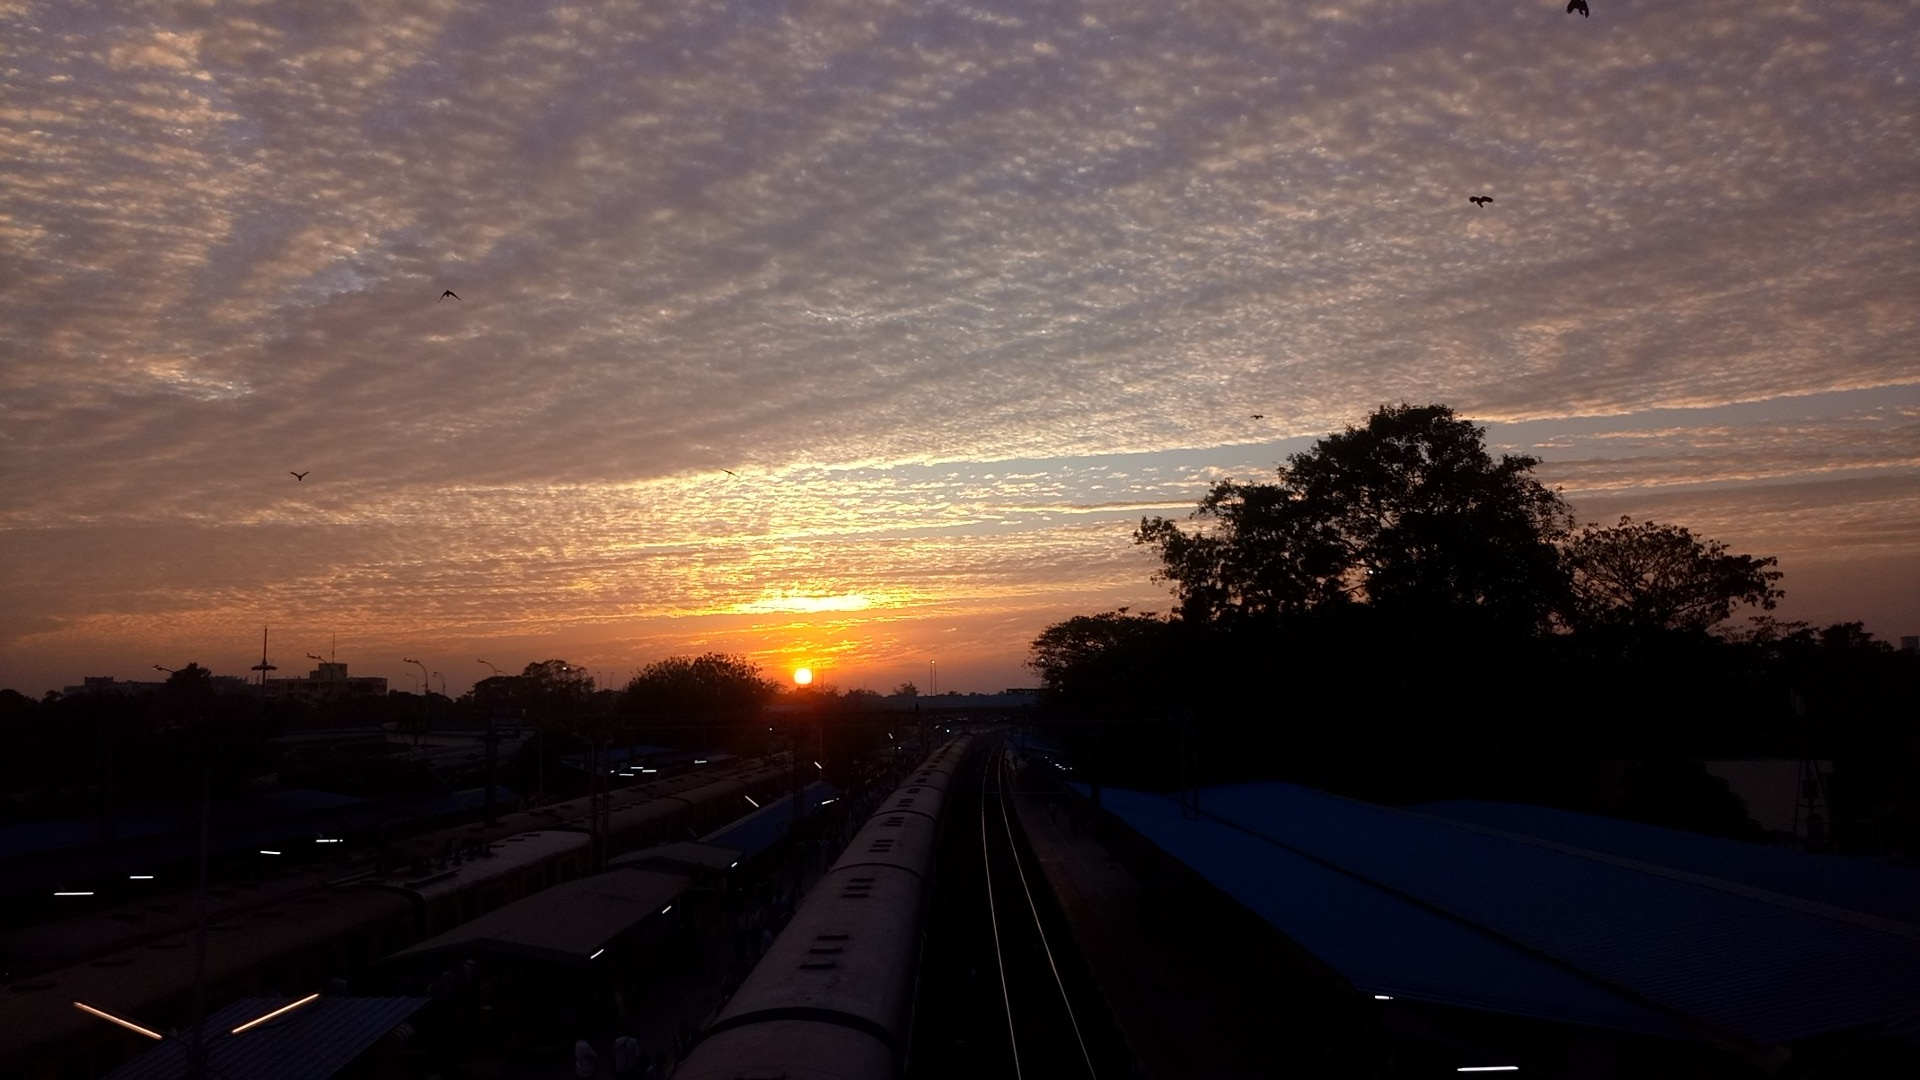 Sunset from a station